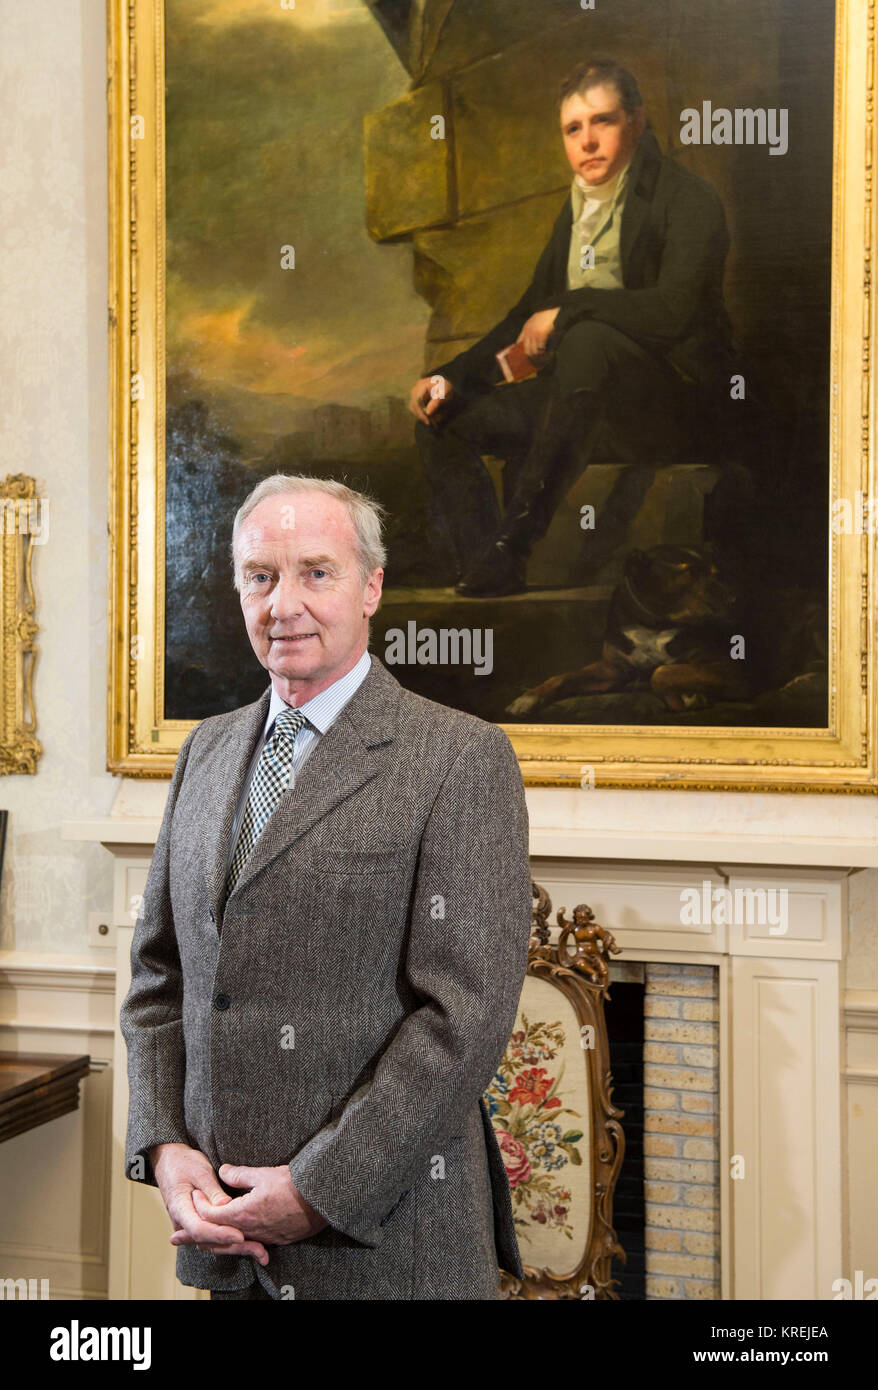 Richard Scott 10th Duke of Buccleuch pictured at Bowhill House near Selkirk, Scotland. - Stock Image